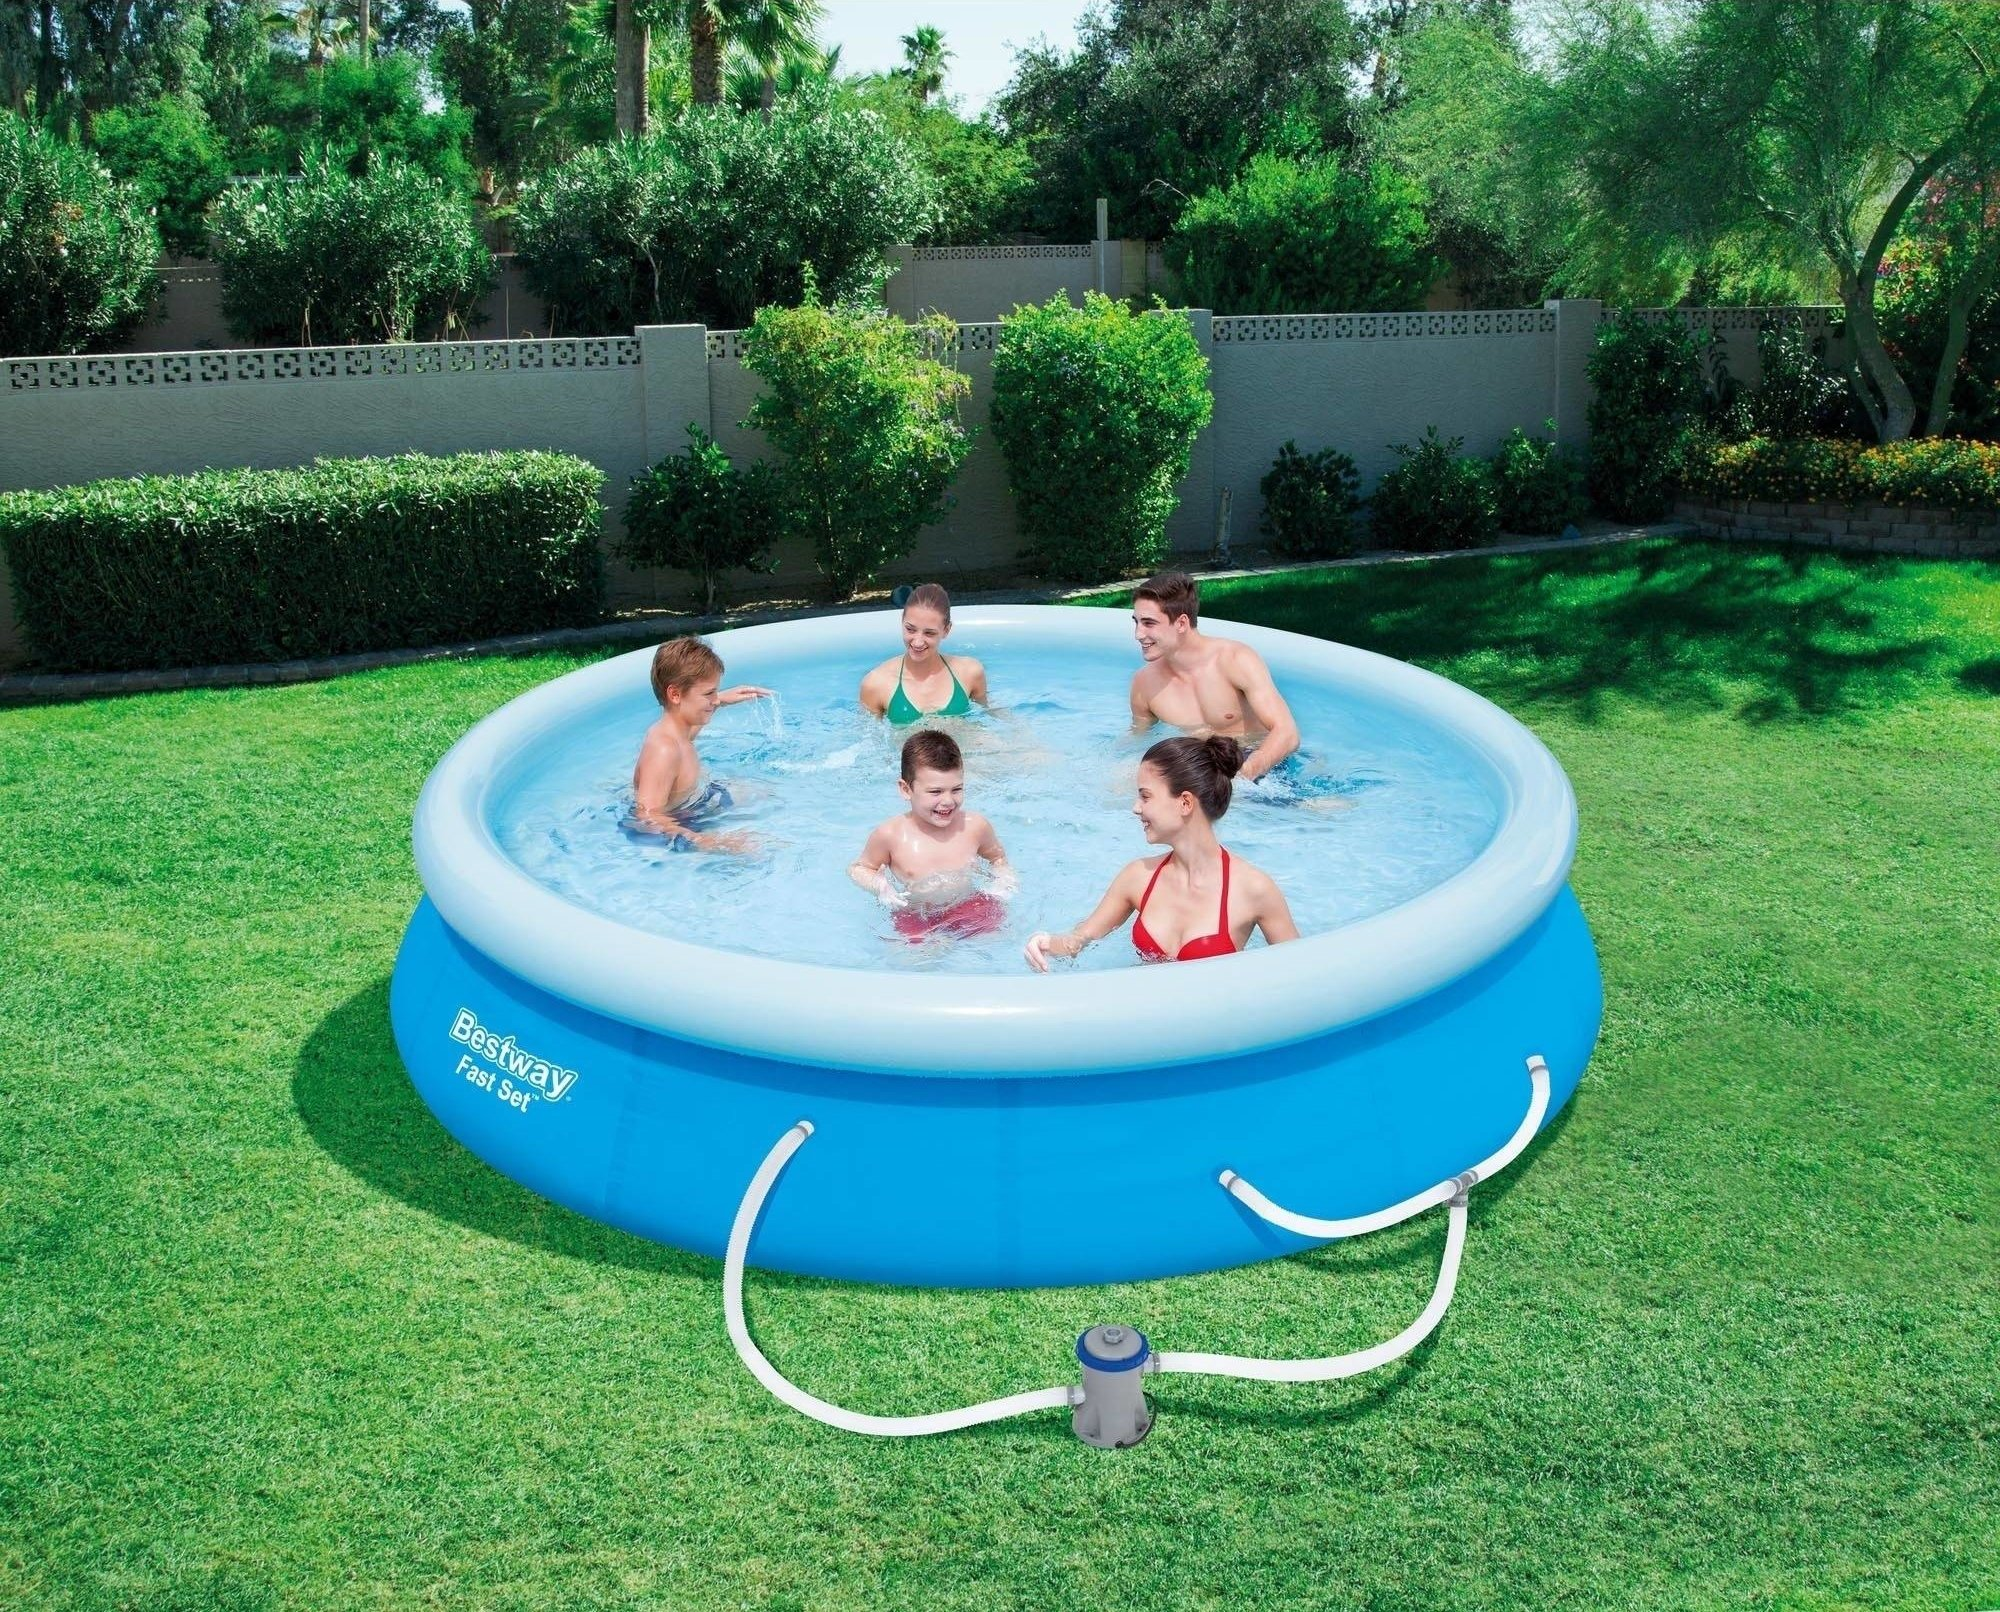 Bestway's Fast Swimming Pool Set 12' x 30'' with Filter Pump by Bestway'sFast